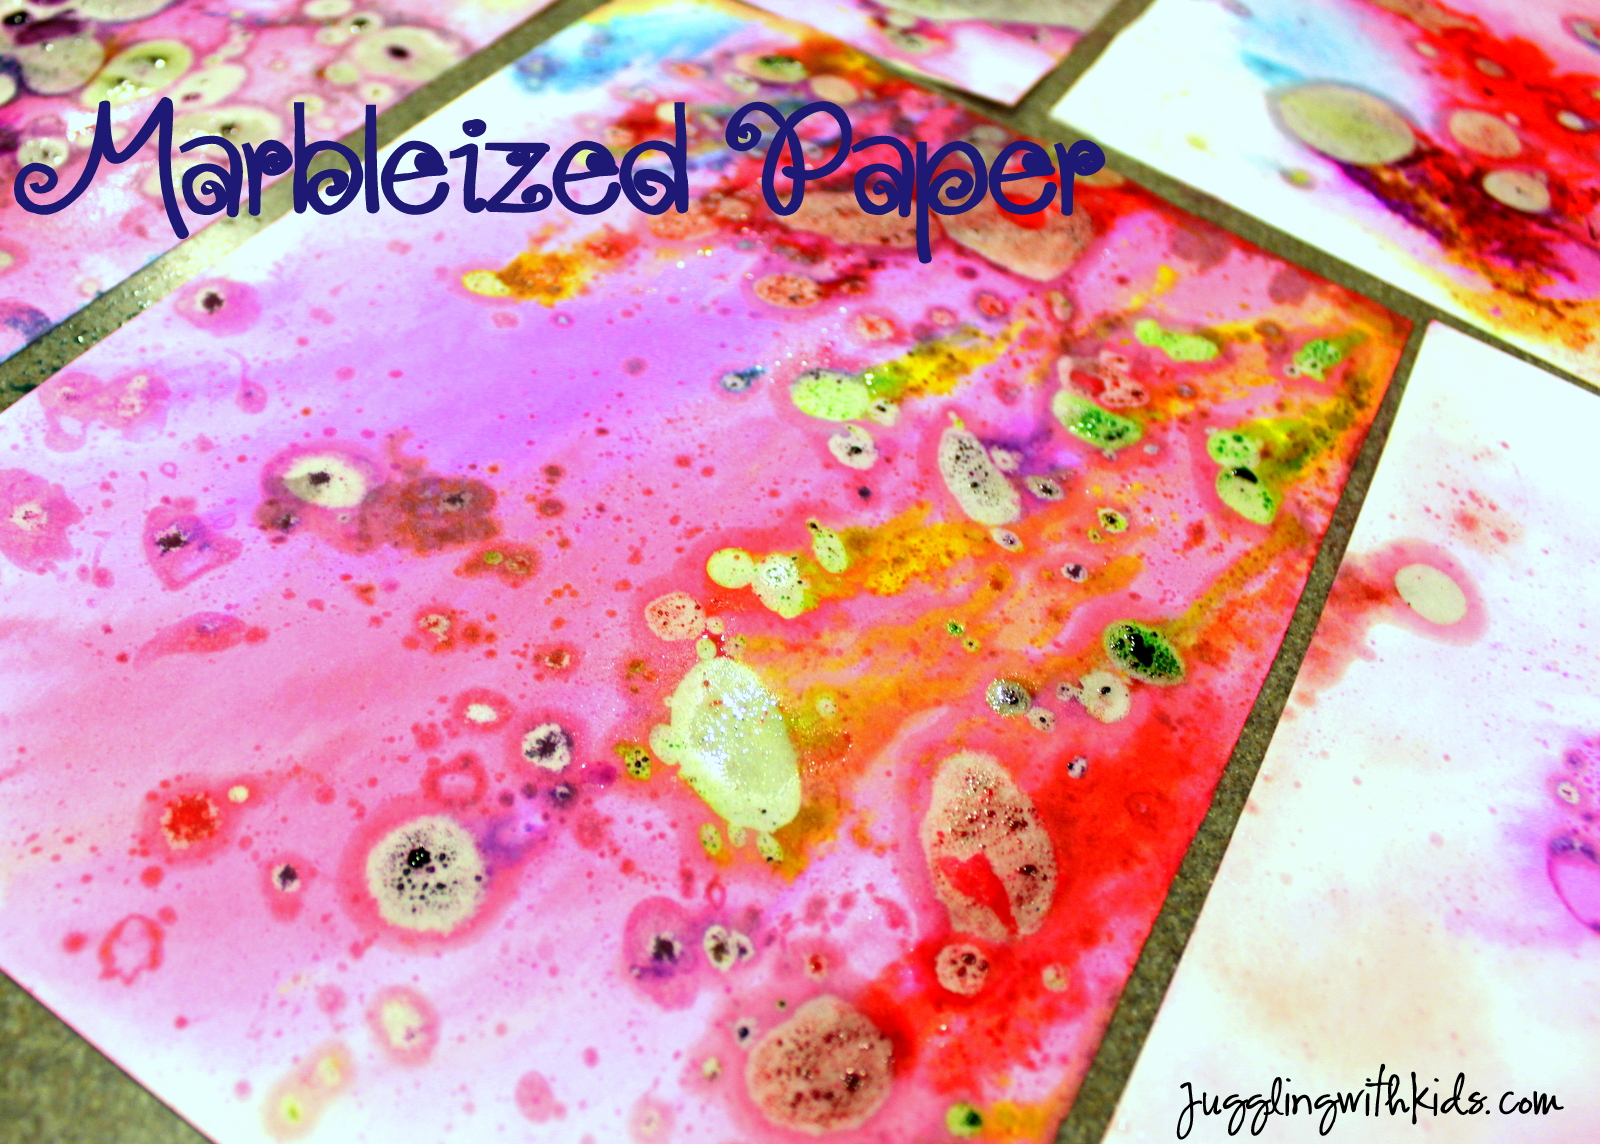 Marbleized Paper – Juggling With Kids